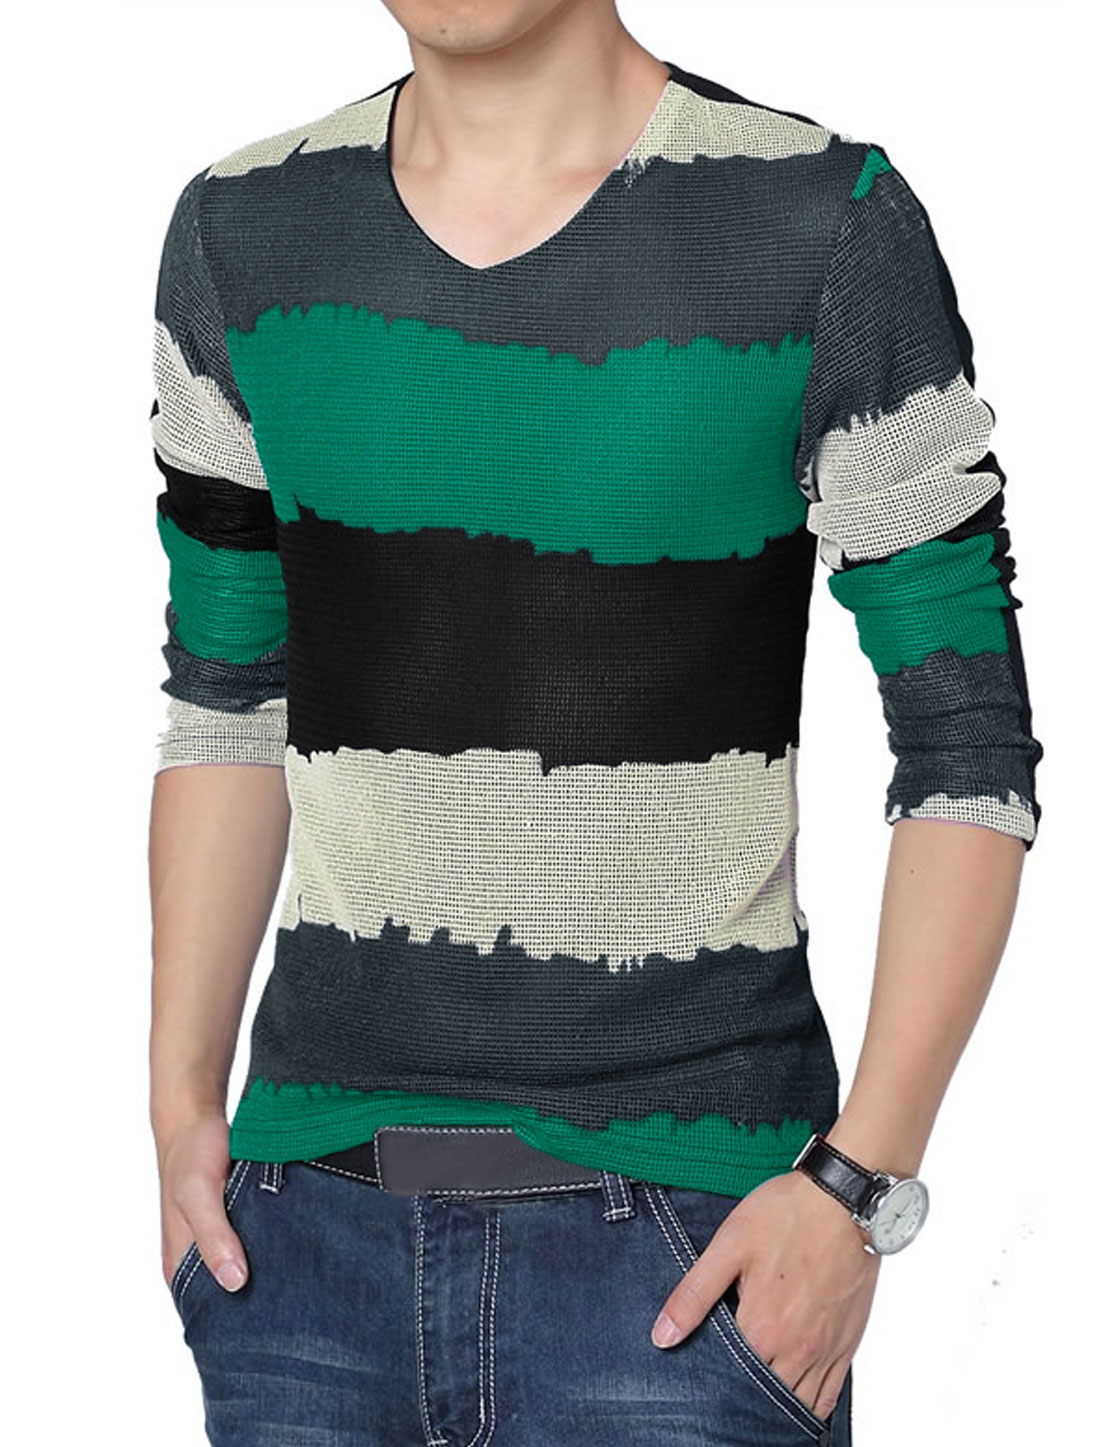 Men Long Sleeve Splicing Stripes Lining Casual Shirt Green Black M